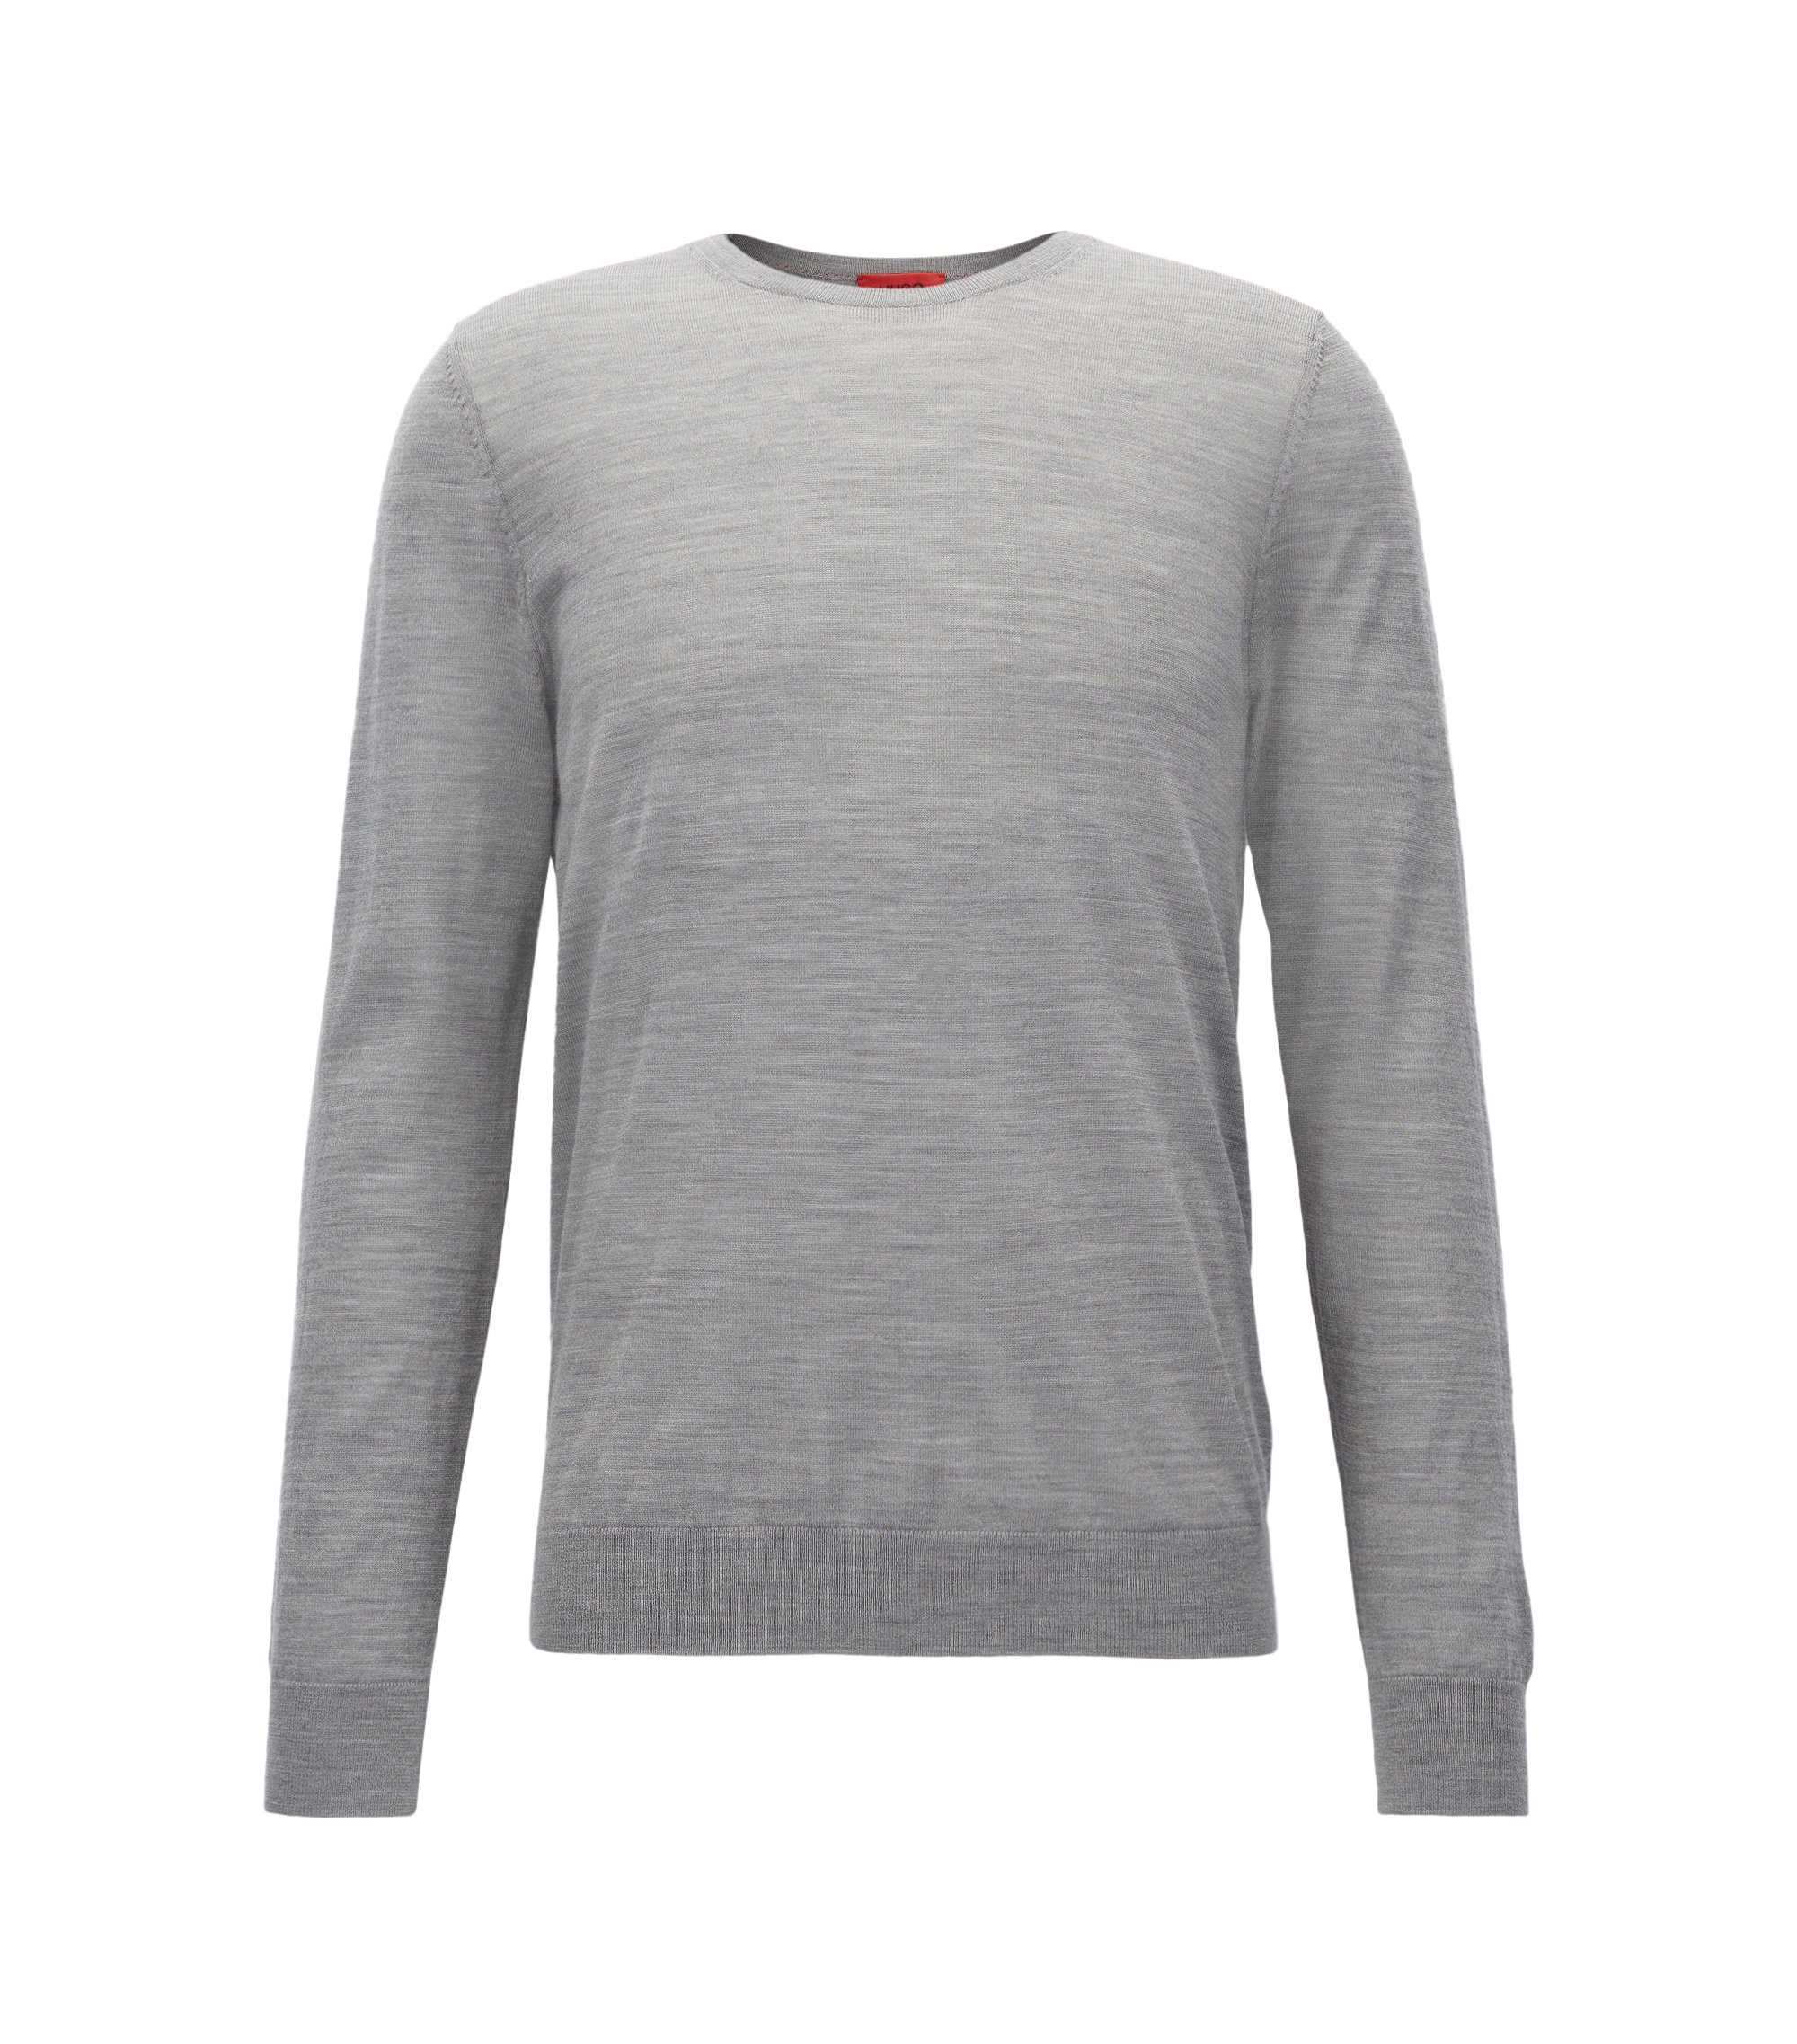 Crew-neck sweater in a lightweight merino wool blend, Grey